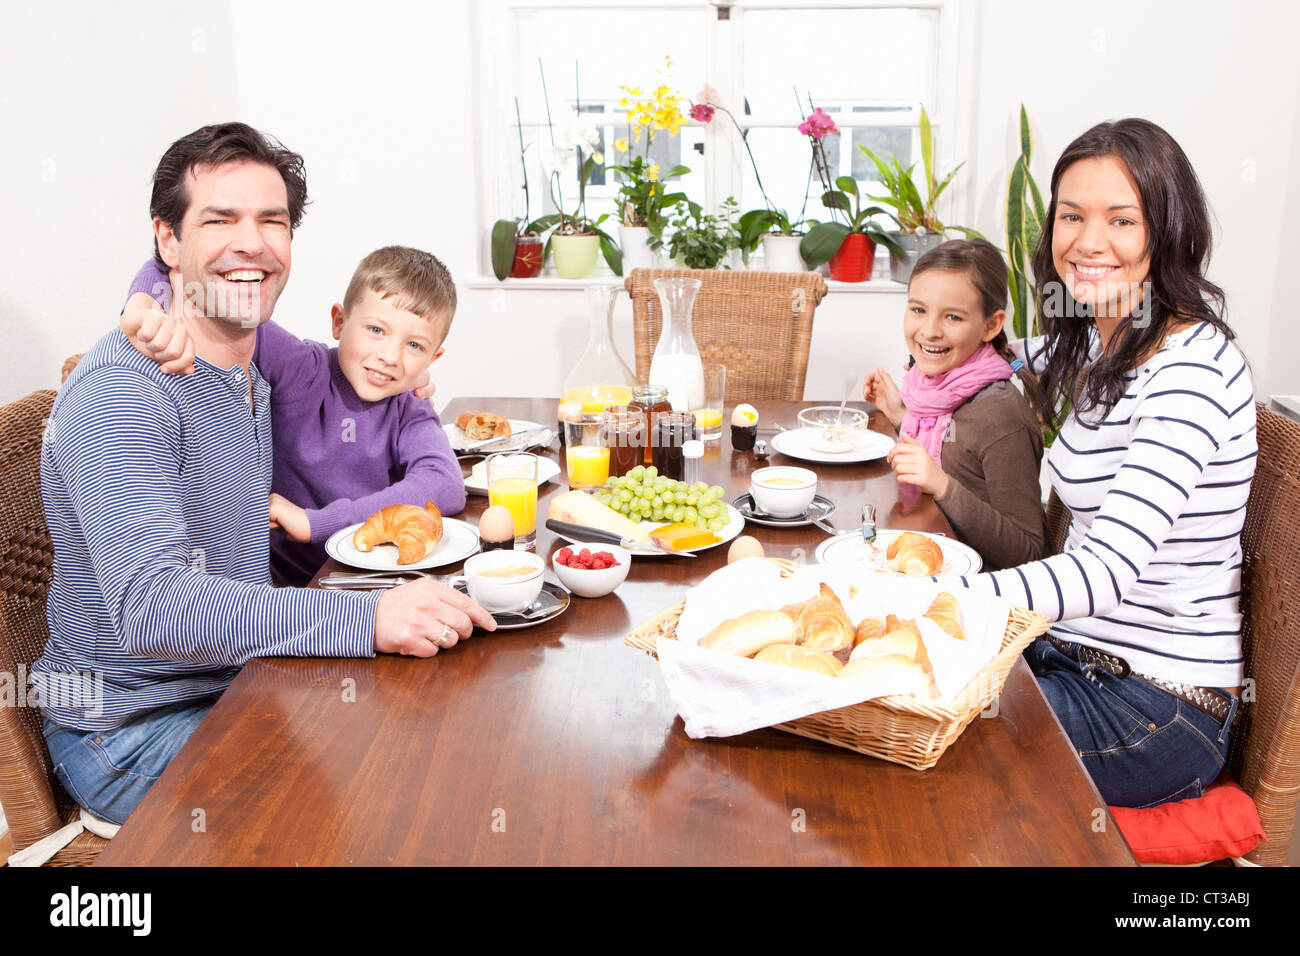 Remarkable Family Eating Breakfast At Table Stock Photo 49246502 Alamy Download Free Architecture Designs Embacsunscenecom